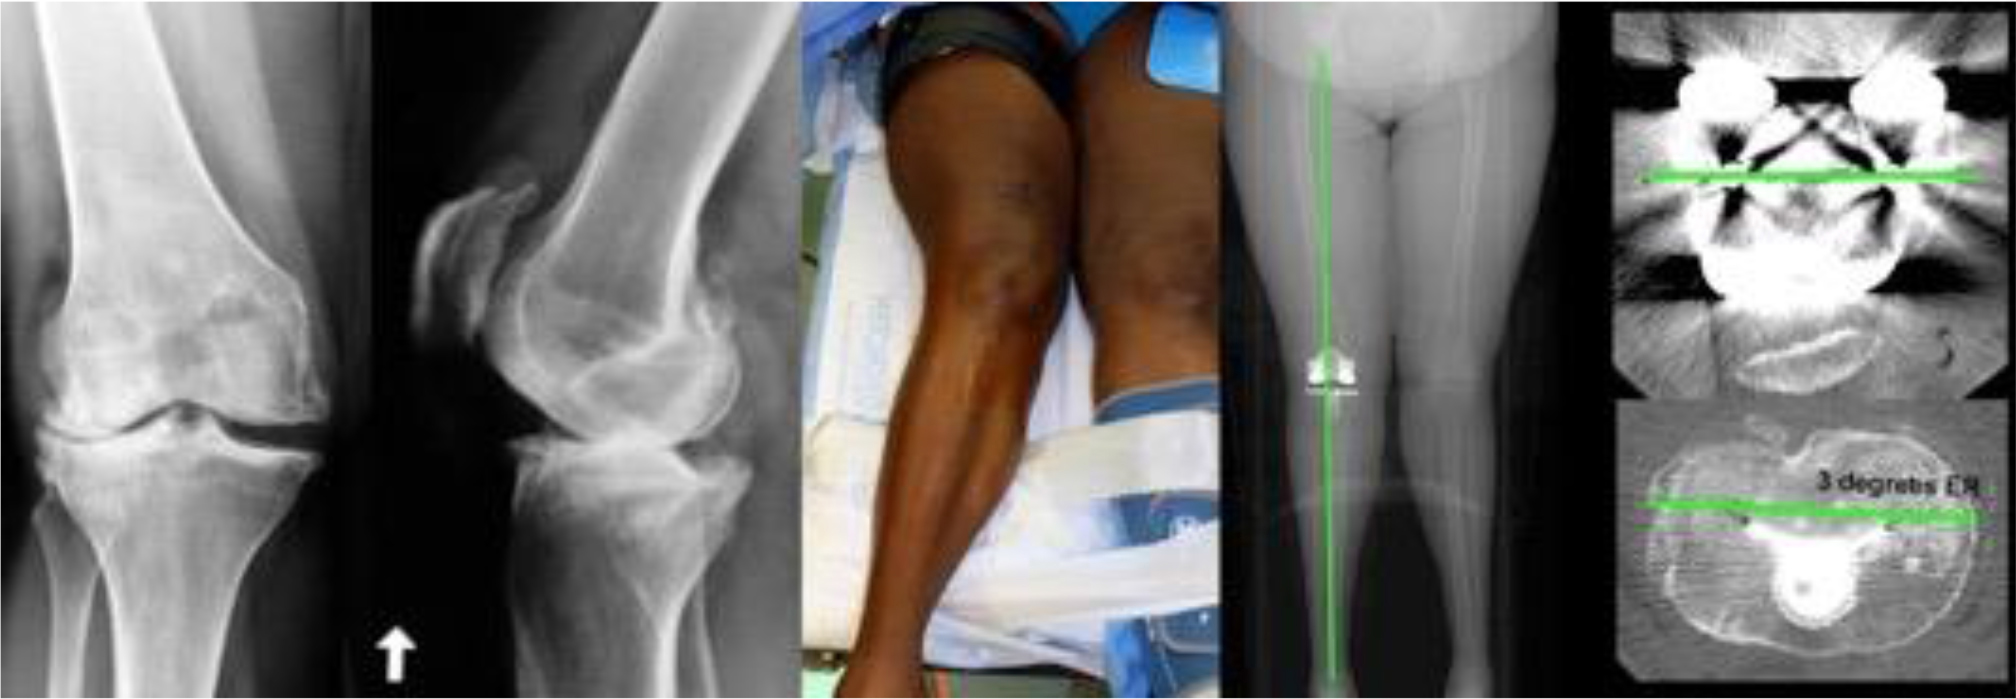 Composite shows the preoperative radiographs of the knee with severe valgus deformity, intraoperative photograph of the severe valgus deformity, postoperative computer tomographic scanogram of the limb, and axial views of the femoral and tibial components. The kinematically aligned TKA restored the alignment of the tibial joint line, knee, Q-angle, and limb close to those of the contralateral or native limb without release of the lateral collateral or lateral retinacular ligament in this patient with an intact posterior cruciate ligament.